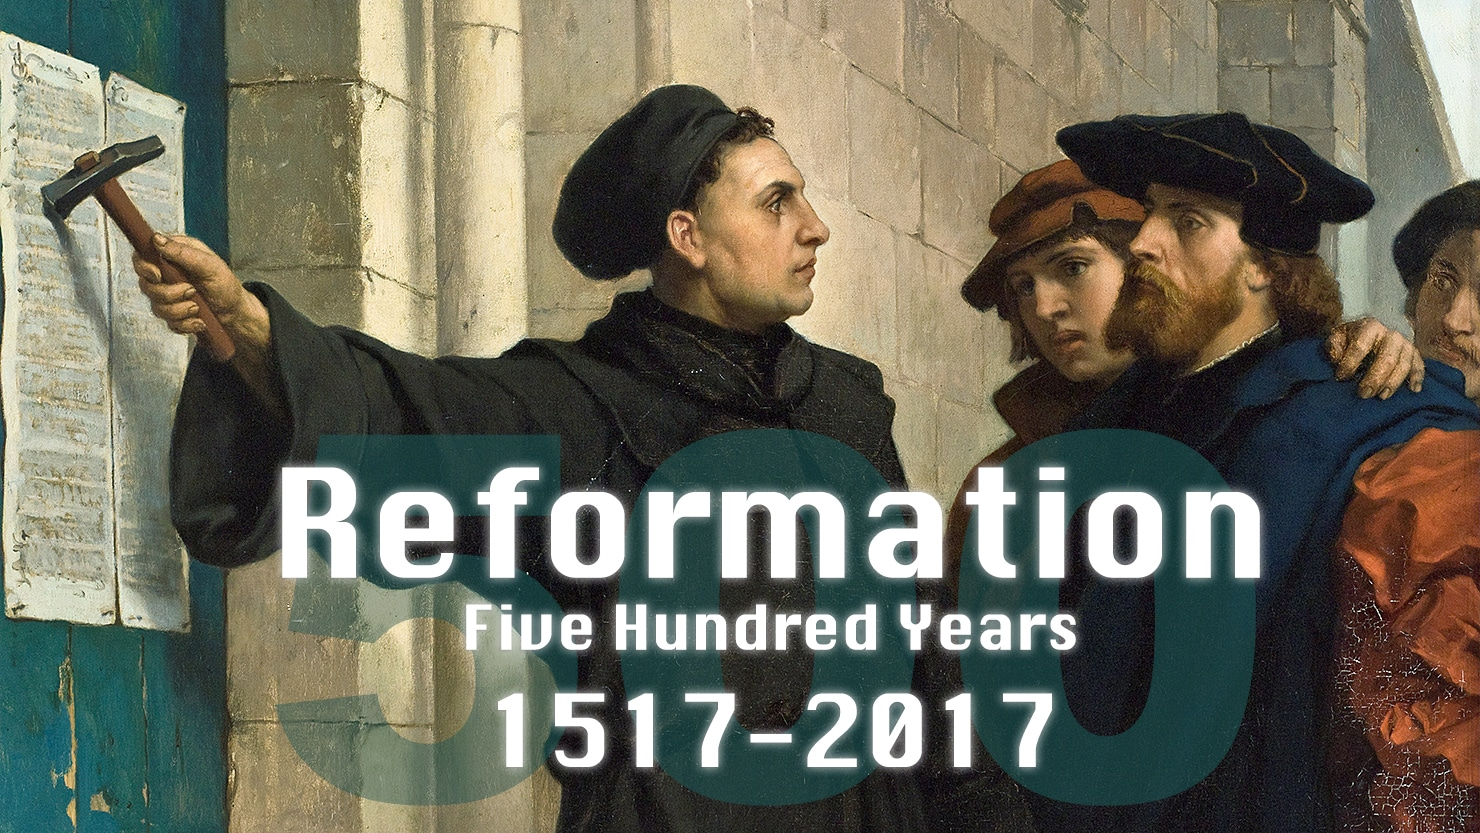 reformation 1073k posts - see instagram photos and videos from 'reformation' hashtag.